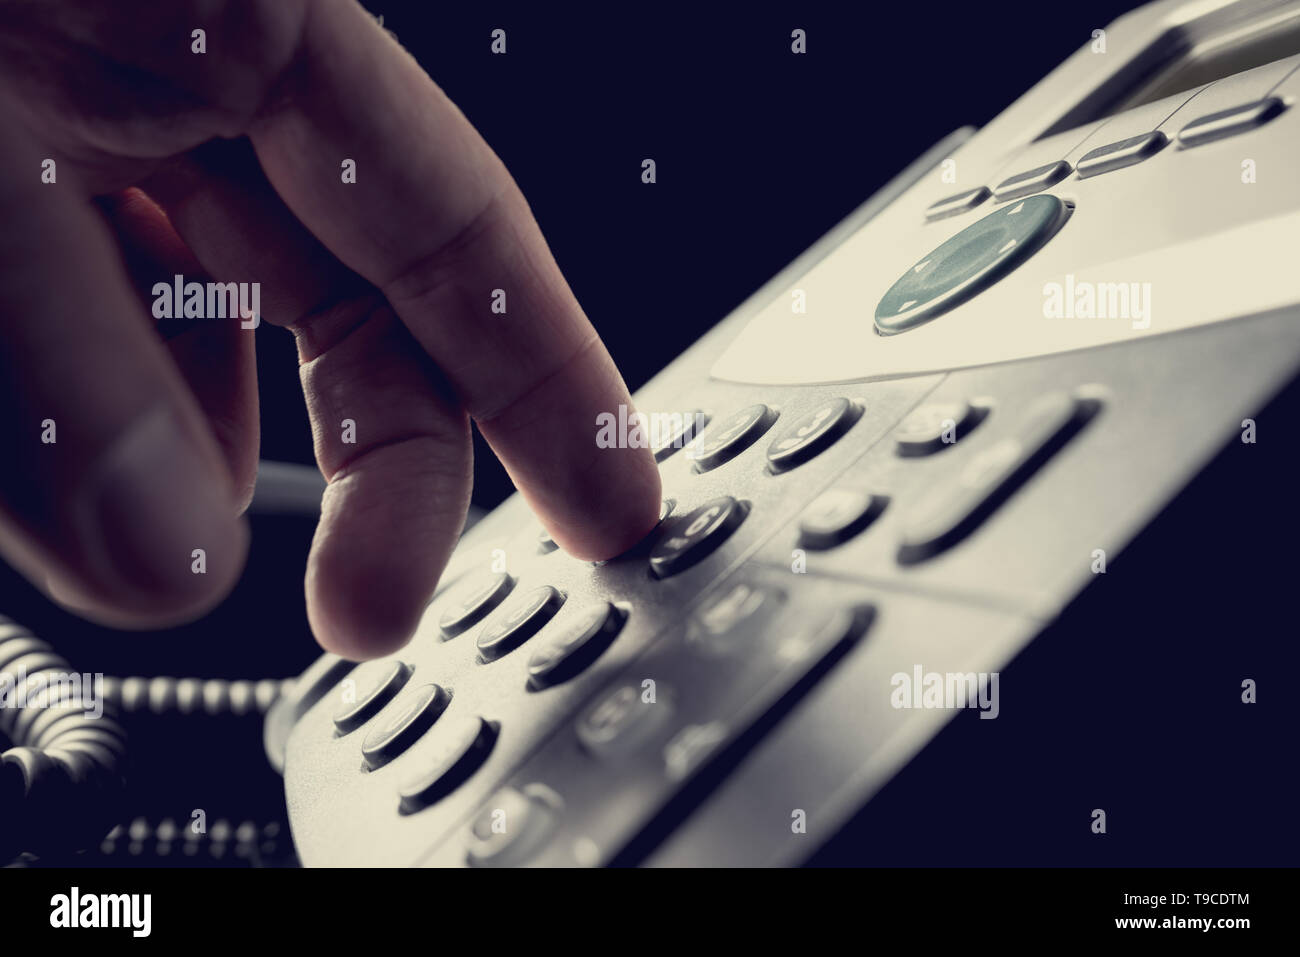 Person dialing out on a telephone punching in the numbers on the keypad with a finger, vintage effect toned image. - Stock Image